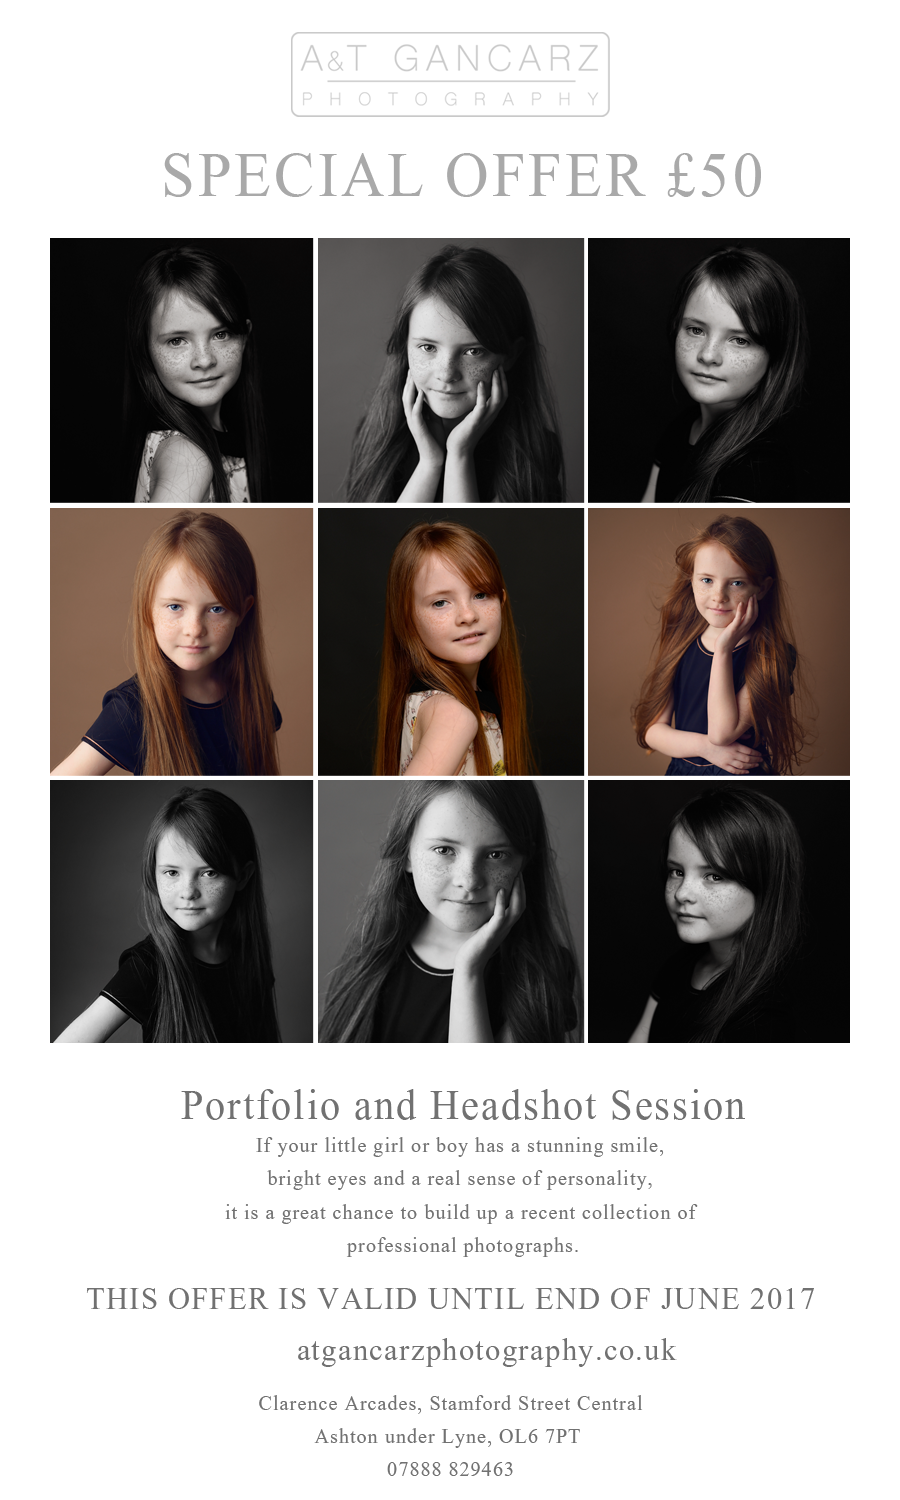 children's modelling, child portraits, modelling portfolios, studio portrait session